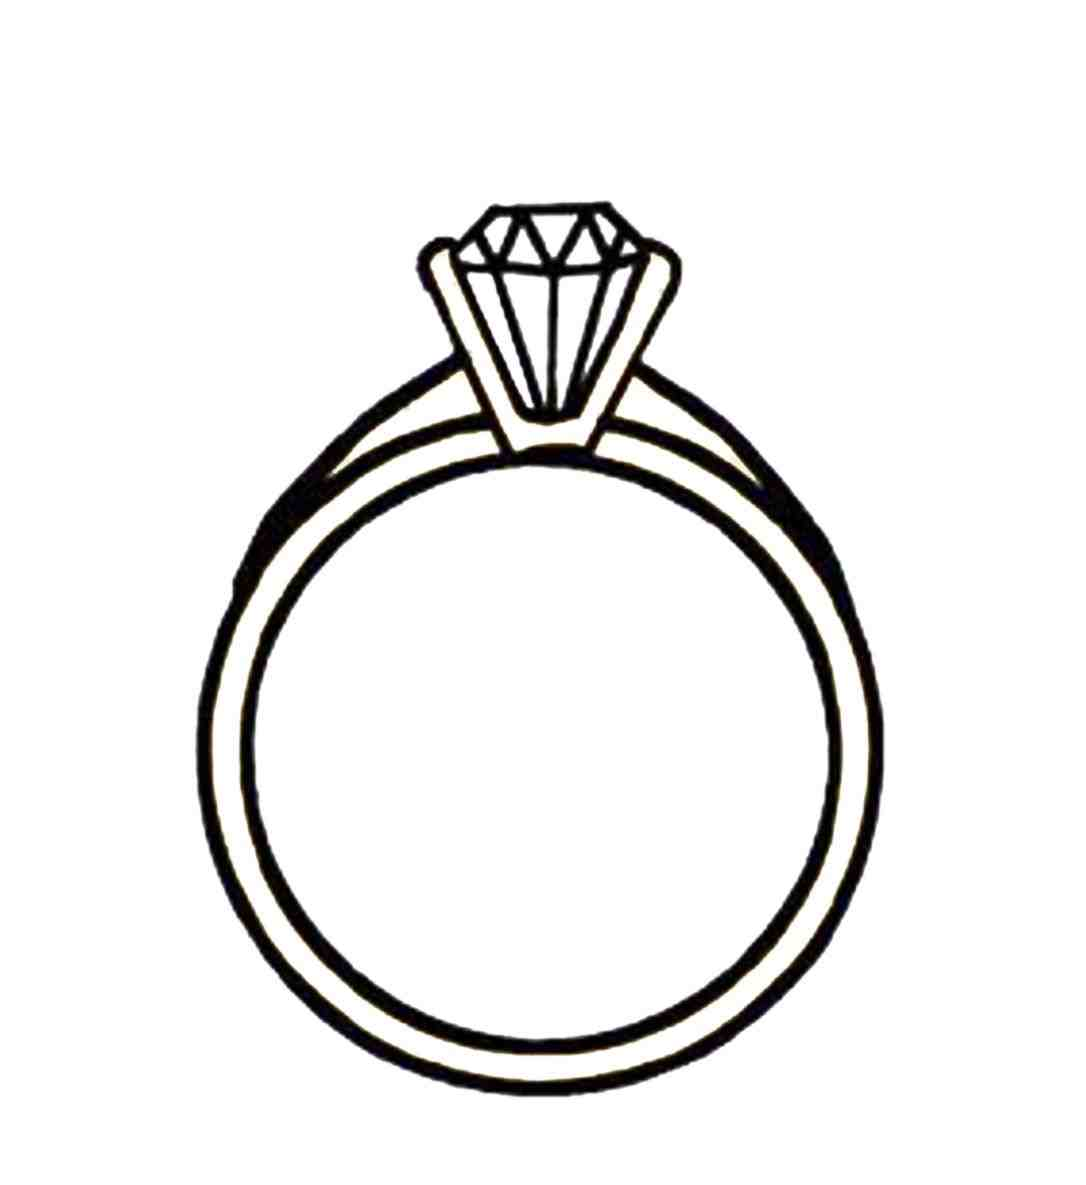 1086x1185 Clip Art Ingcom Ring Icon Png Diamond Collection Ring Silver